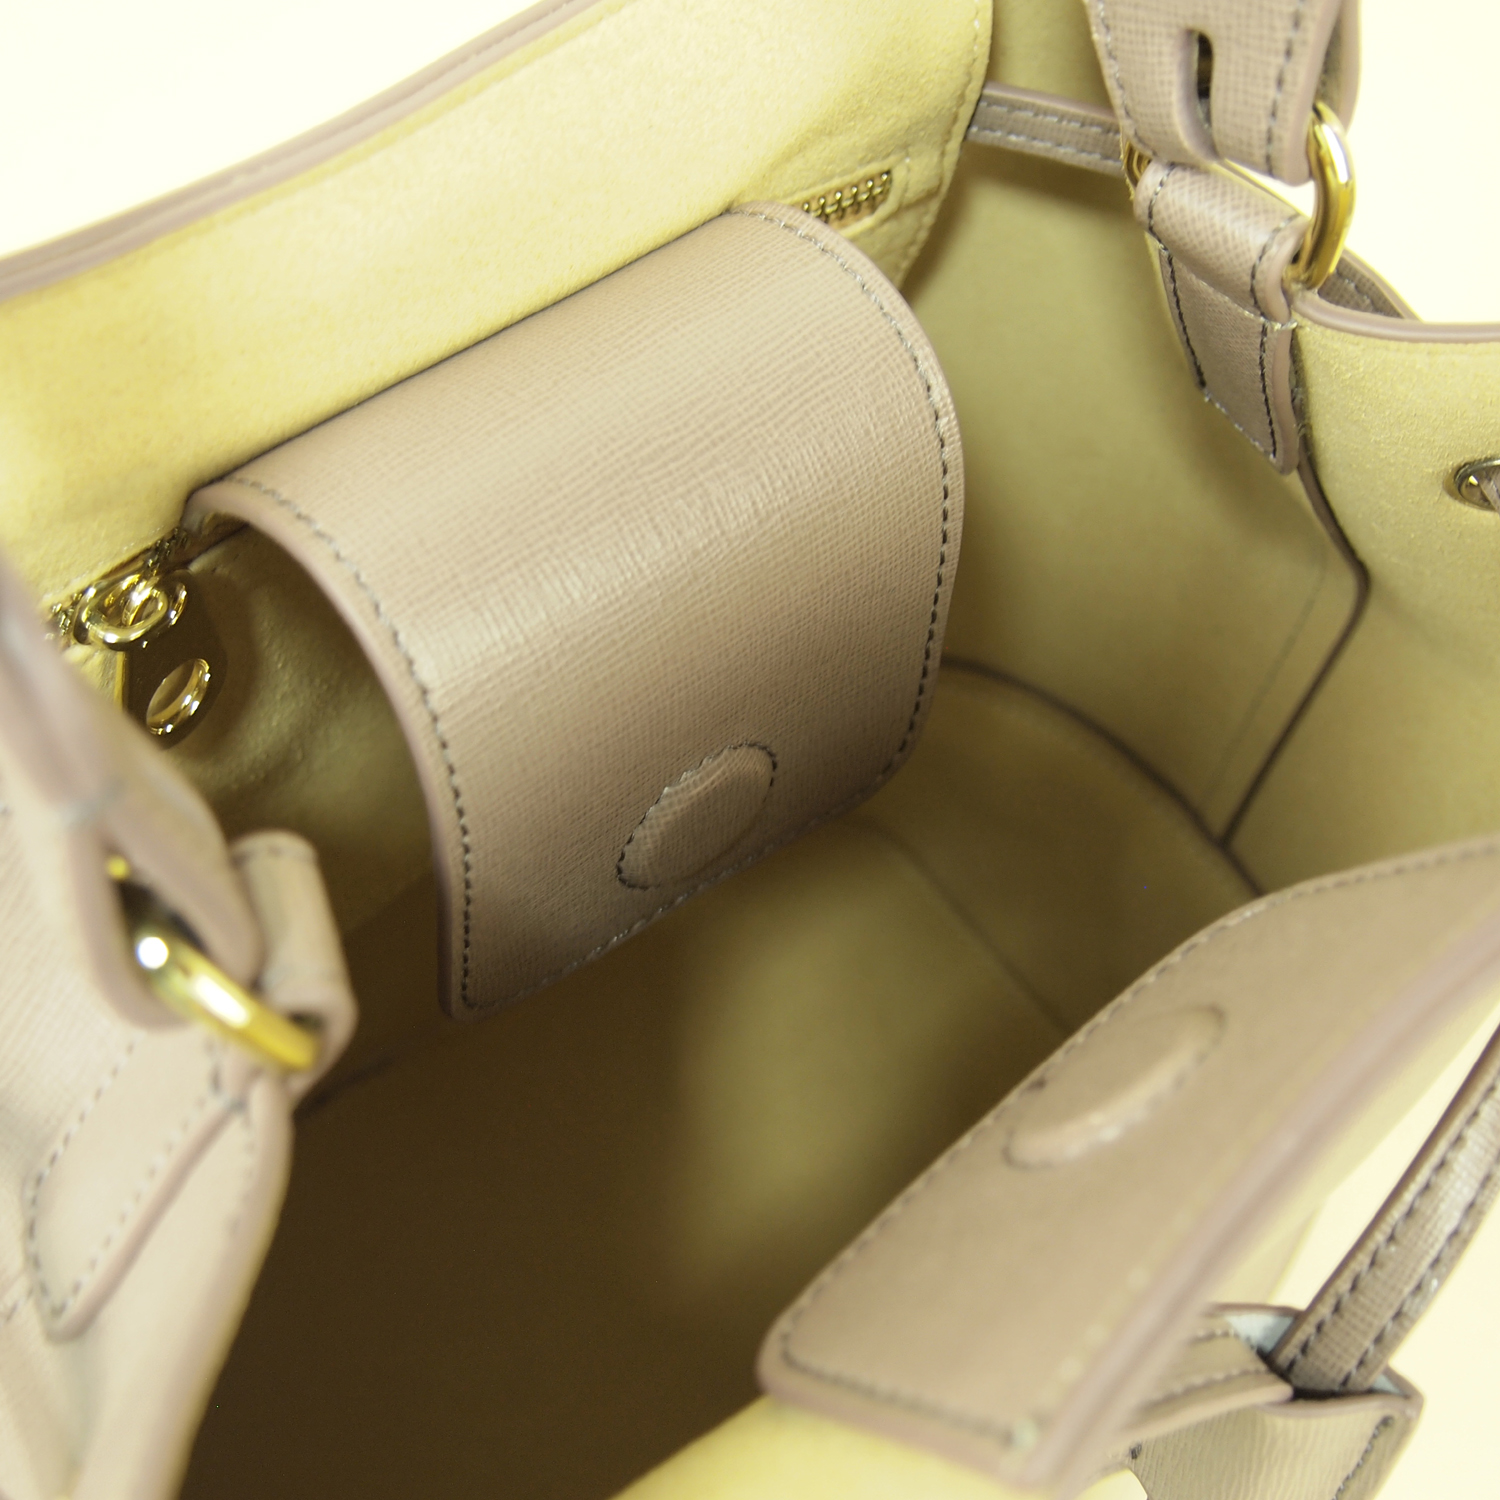 Modern Heritage Effy Tote Interiorl View